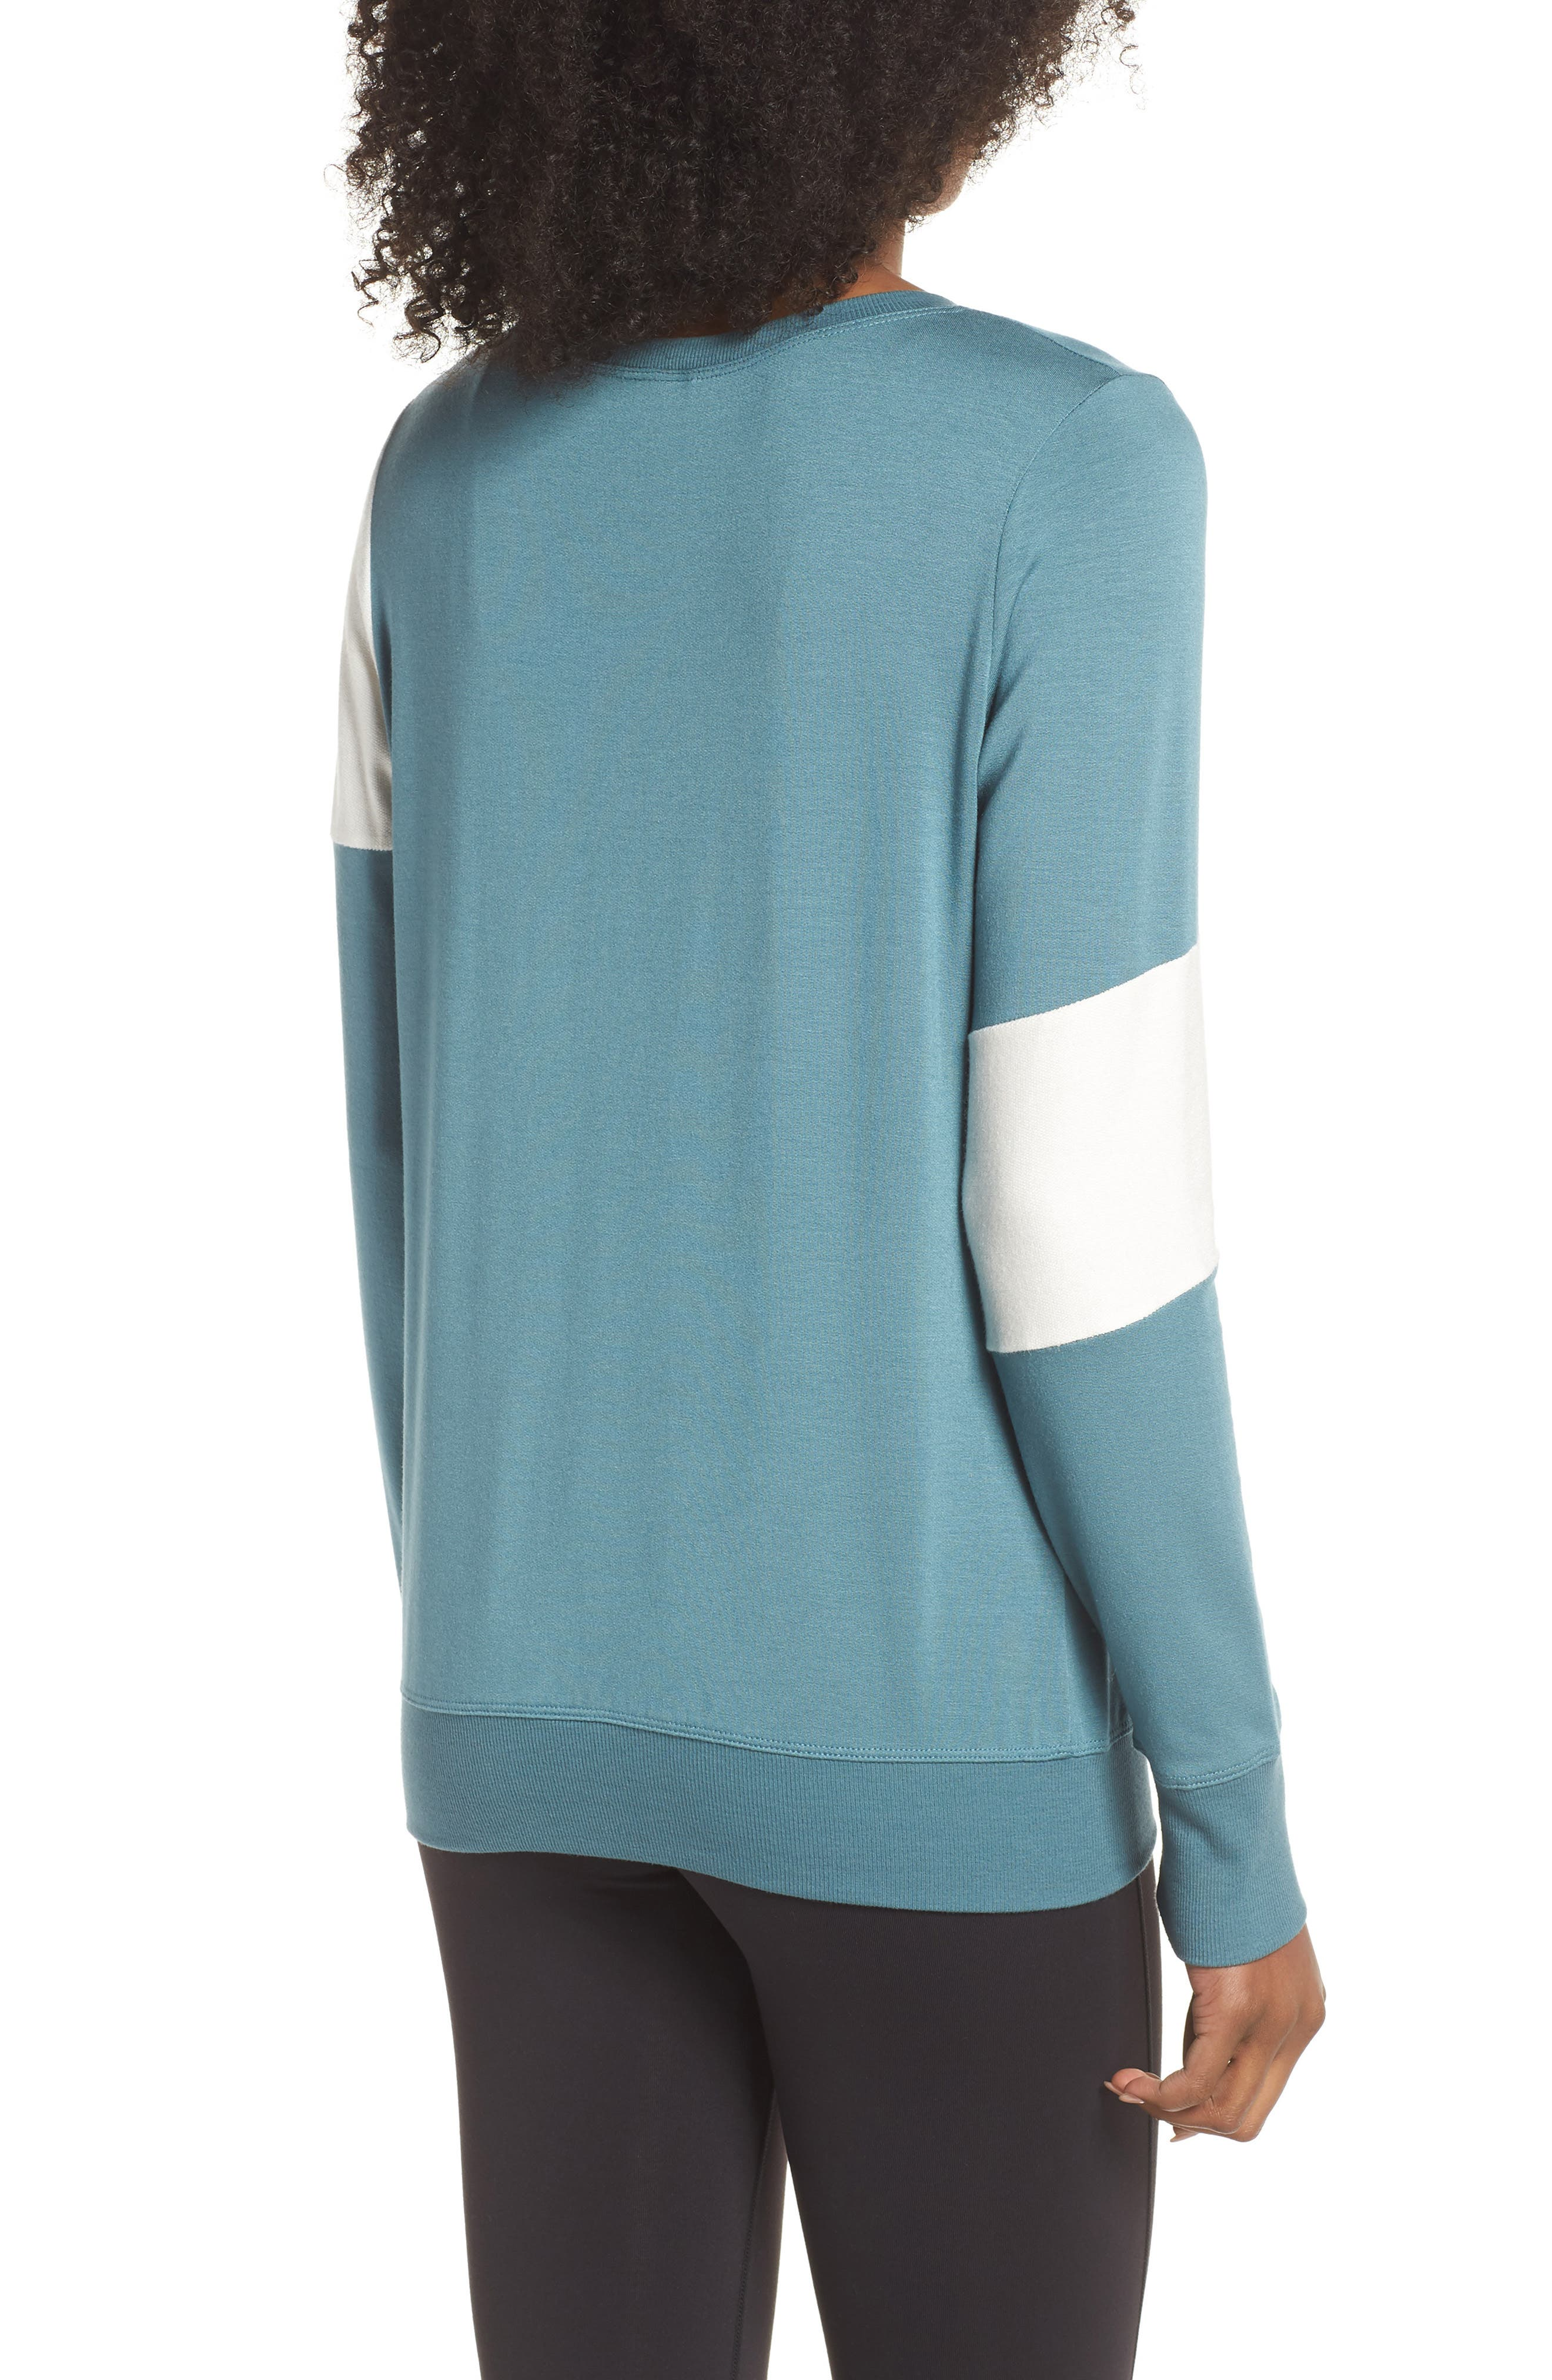 Ramp Sweatshirt,                             Alternate thumbnail 2, color,                             BLUE SURF/ OFF WHITE